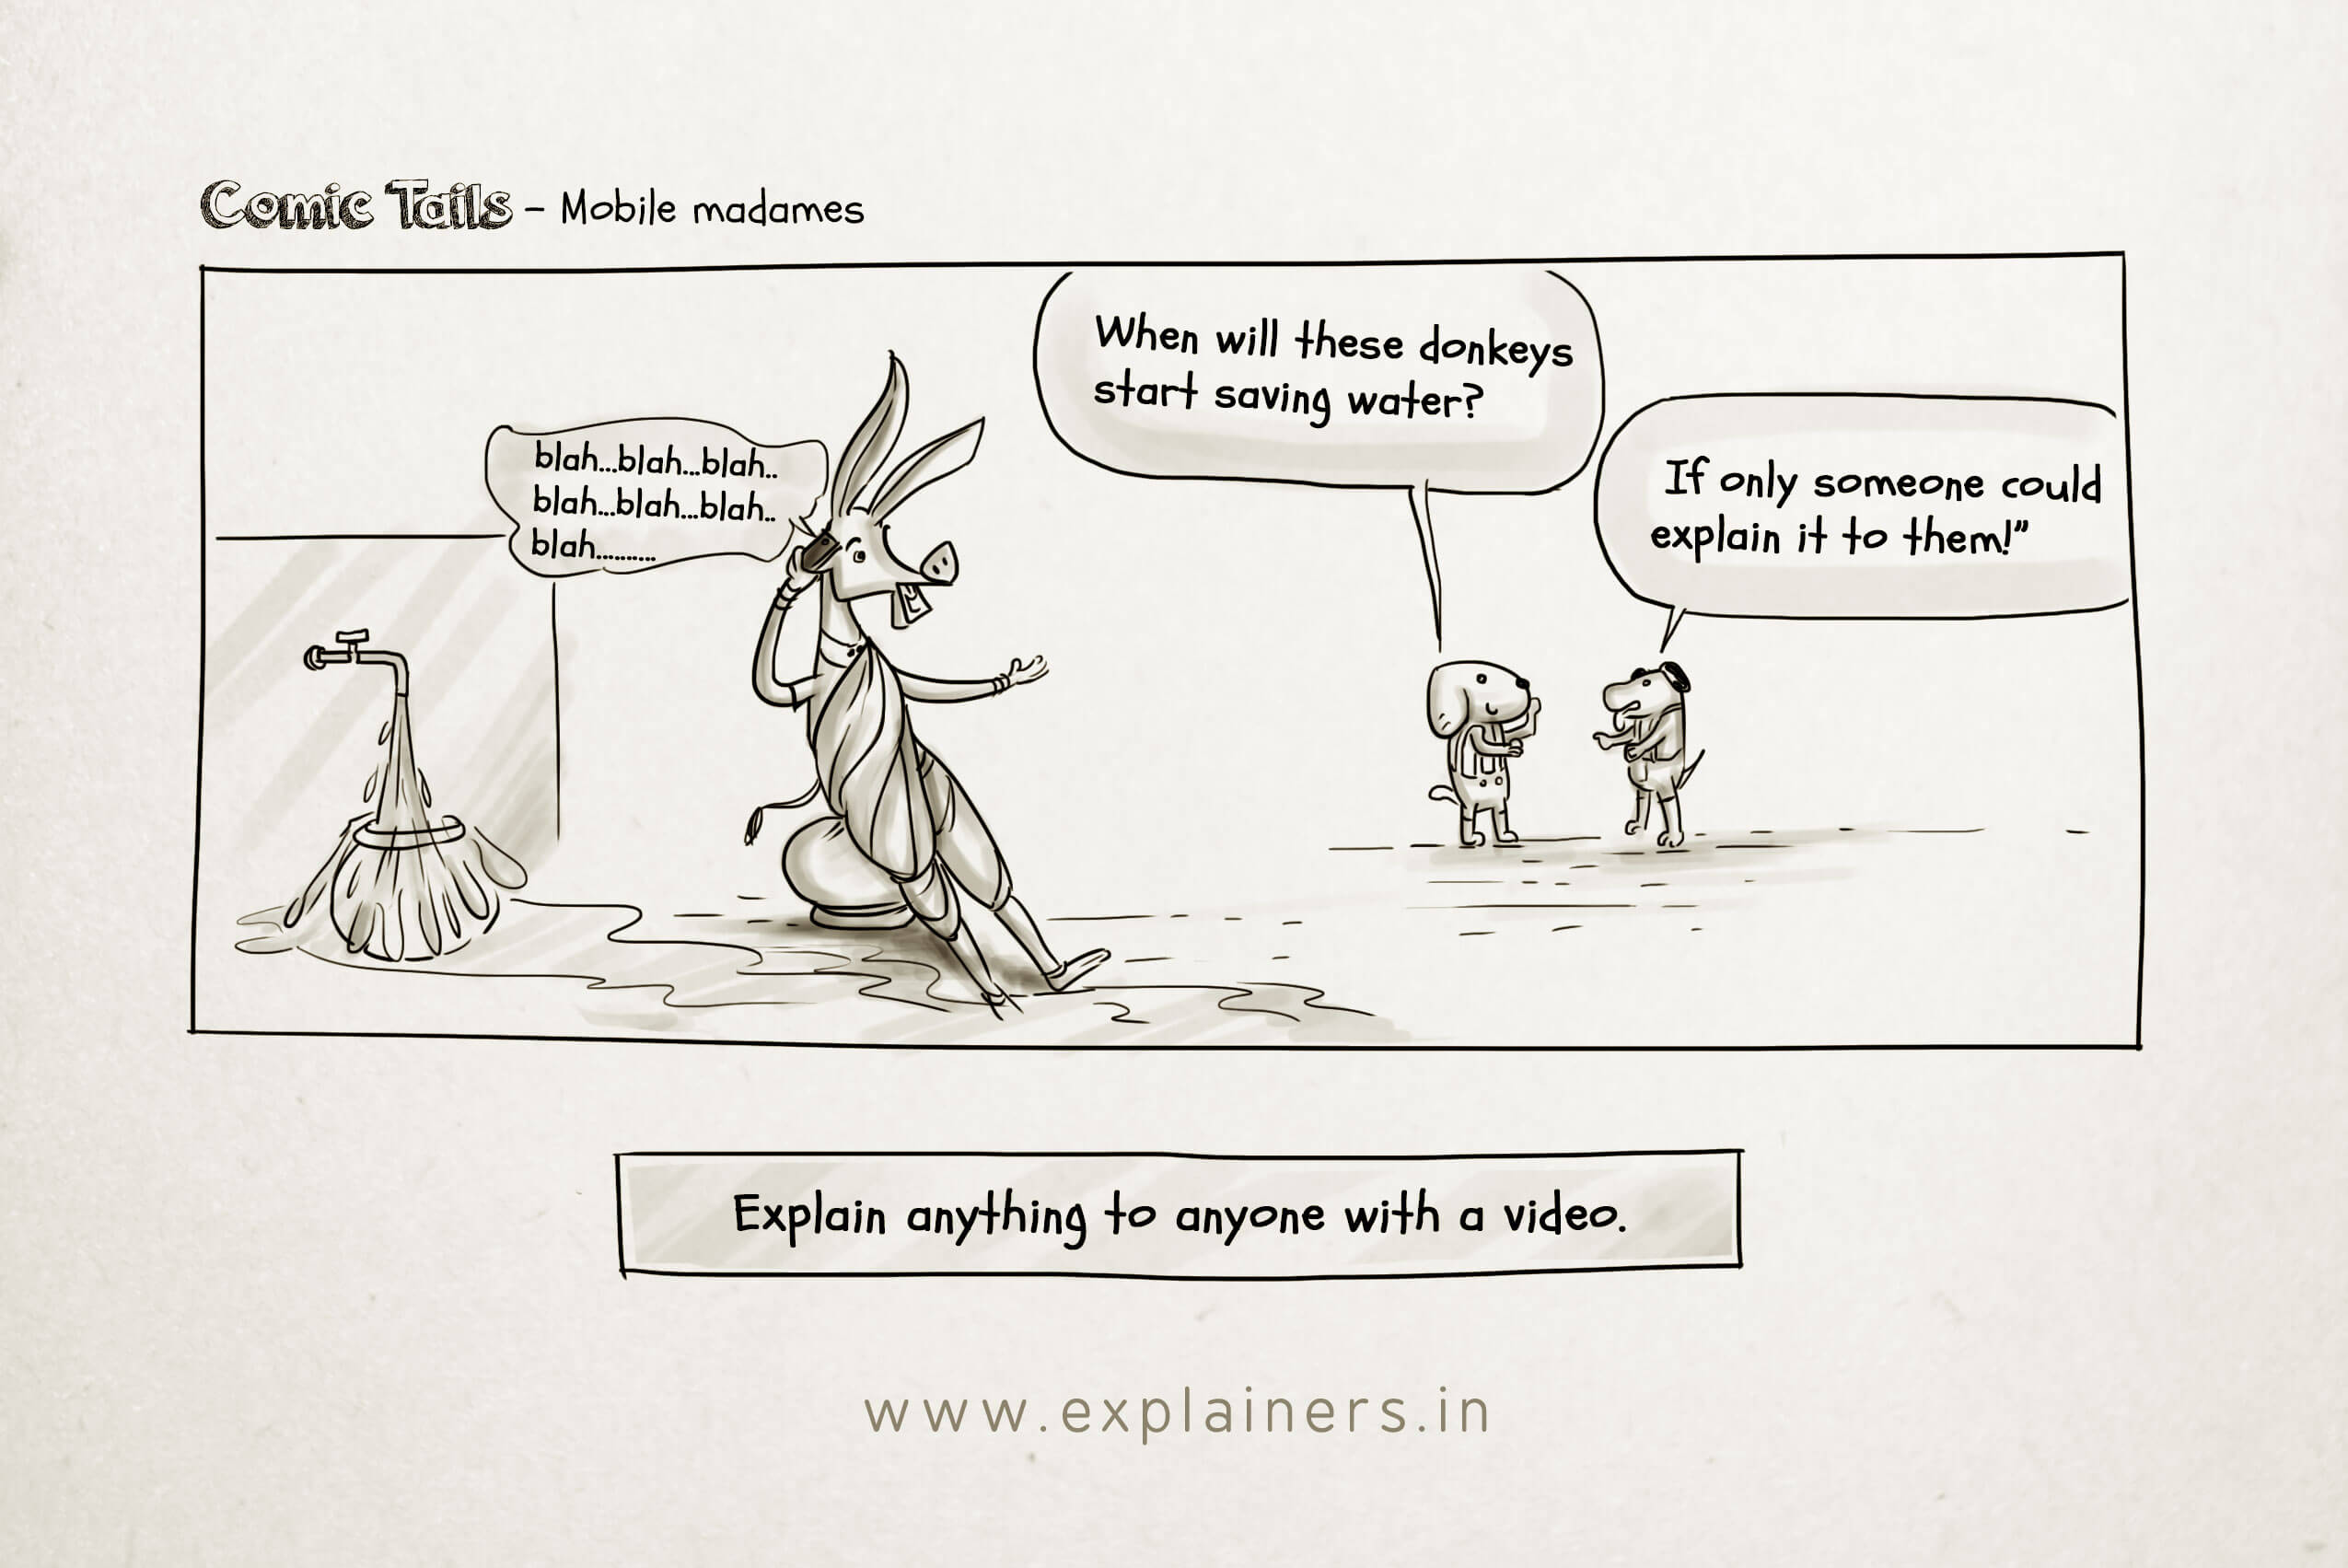 Comic Tails, Mobile madames, Explainers, Explainer Videos